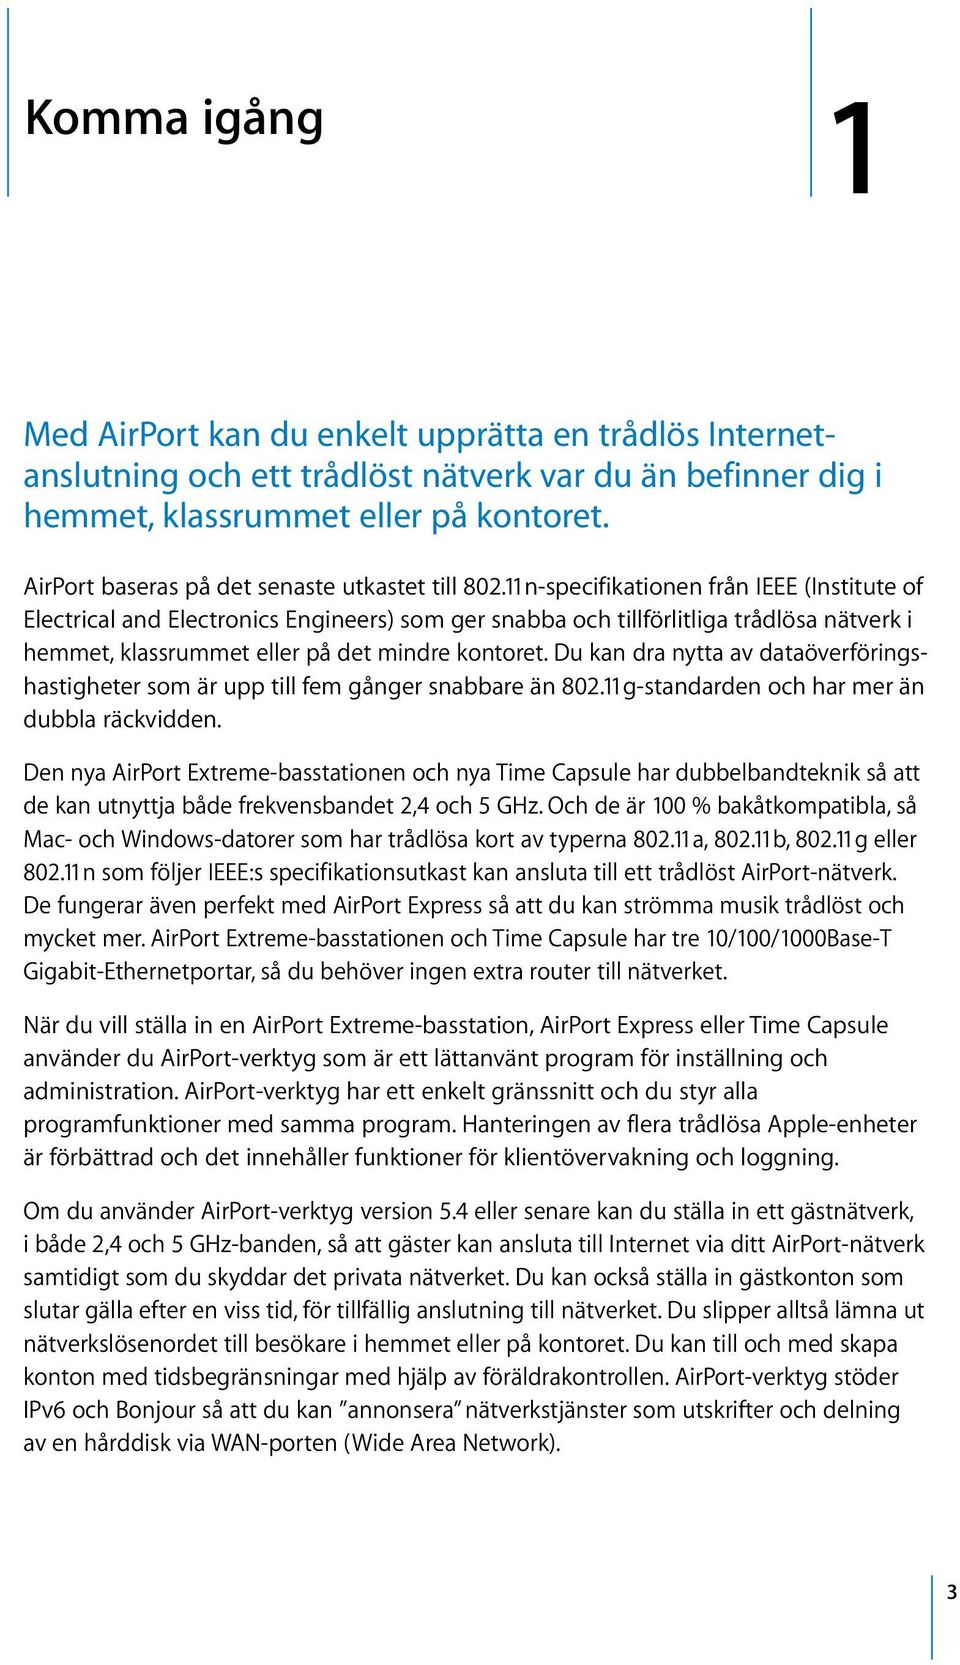 11n-specifikationen från IEEE (Institute of Electrical and Electronics Engineers) som ger snabba och tillförlitliga trådlösa nätverk i hemmet, klassrummet eller på det mindre kontoret.